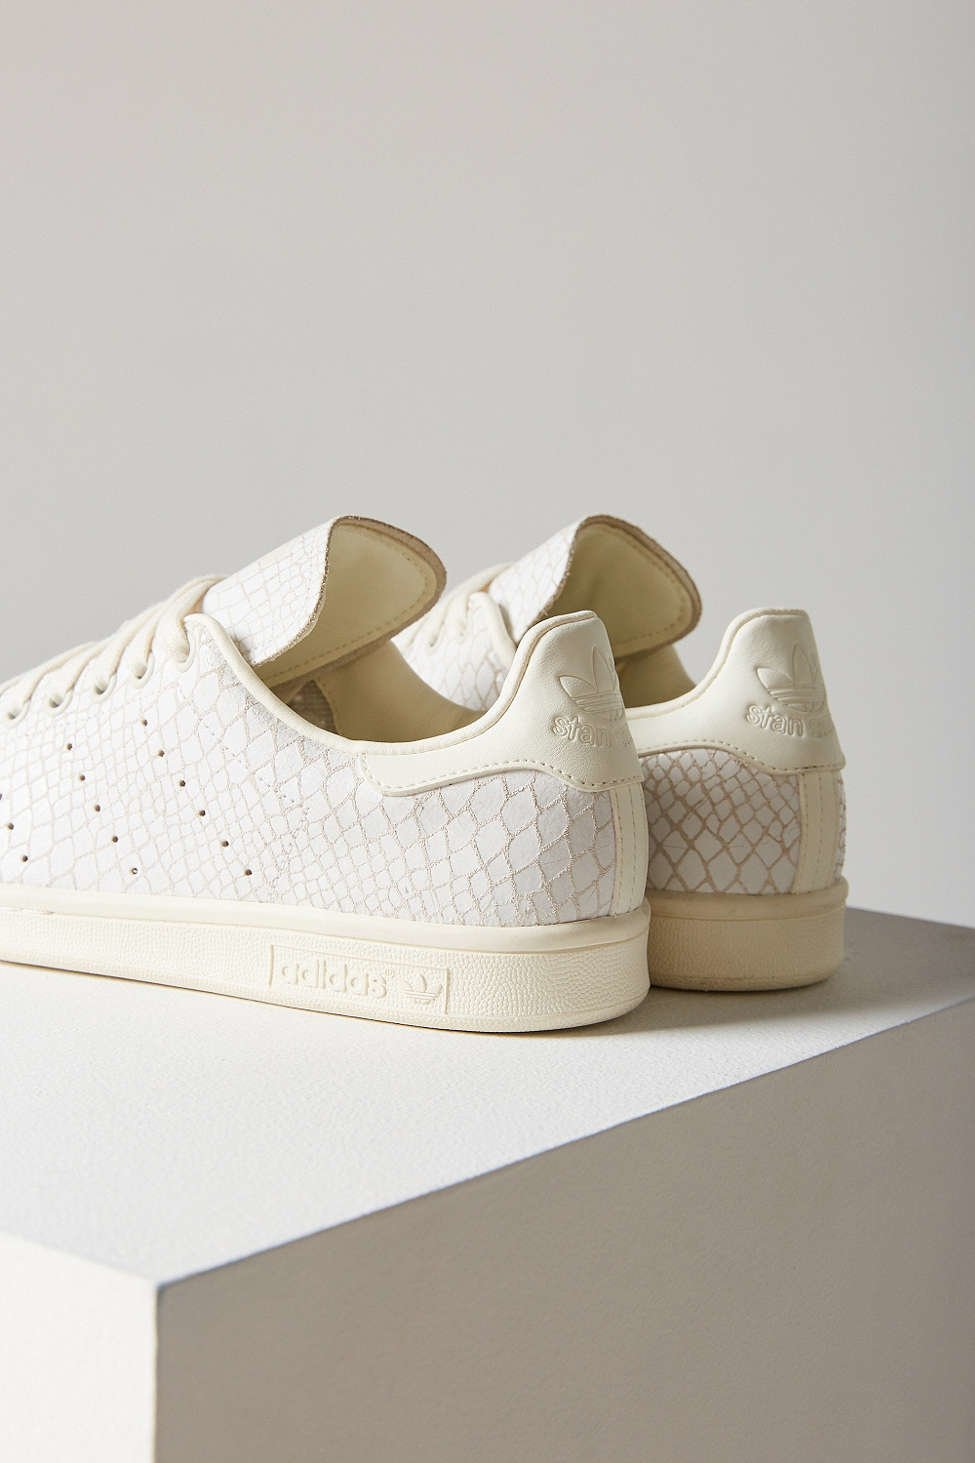 popular stores quality detailing Stan Smith Croc-Embossed Leather Low-Top Sneakers